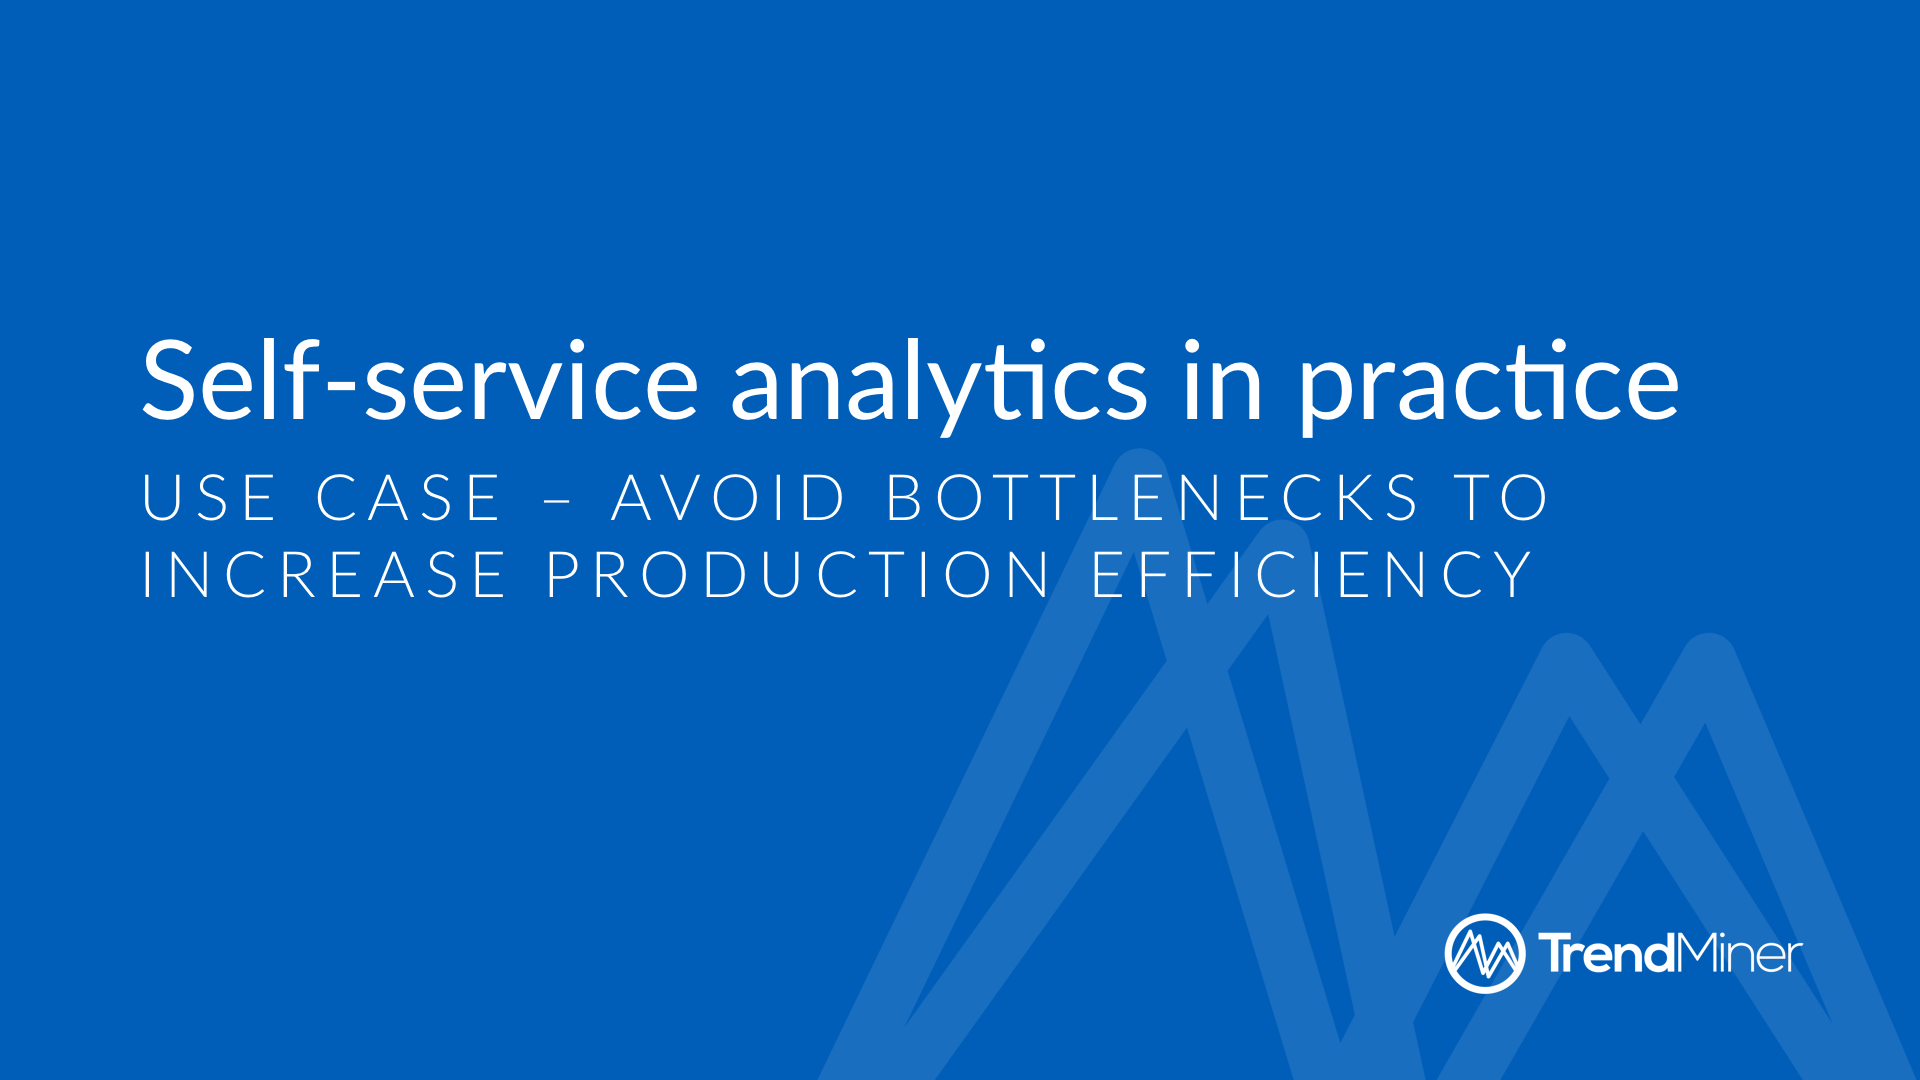 Use Case - avoid bottlenecks